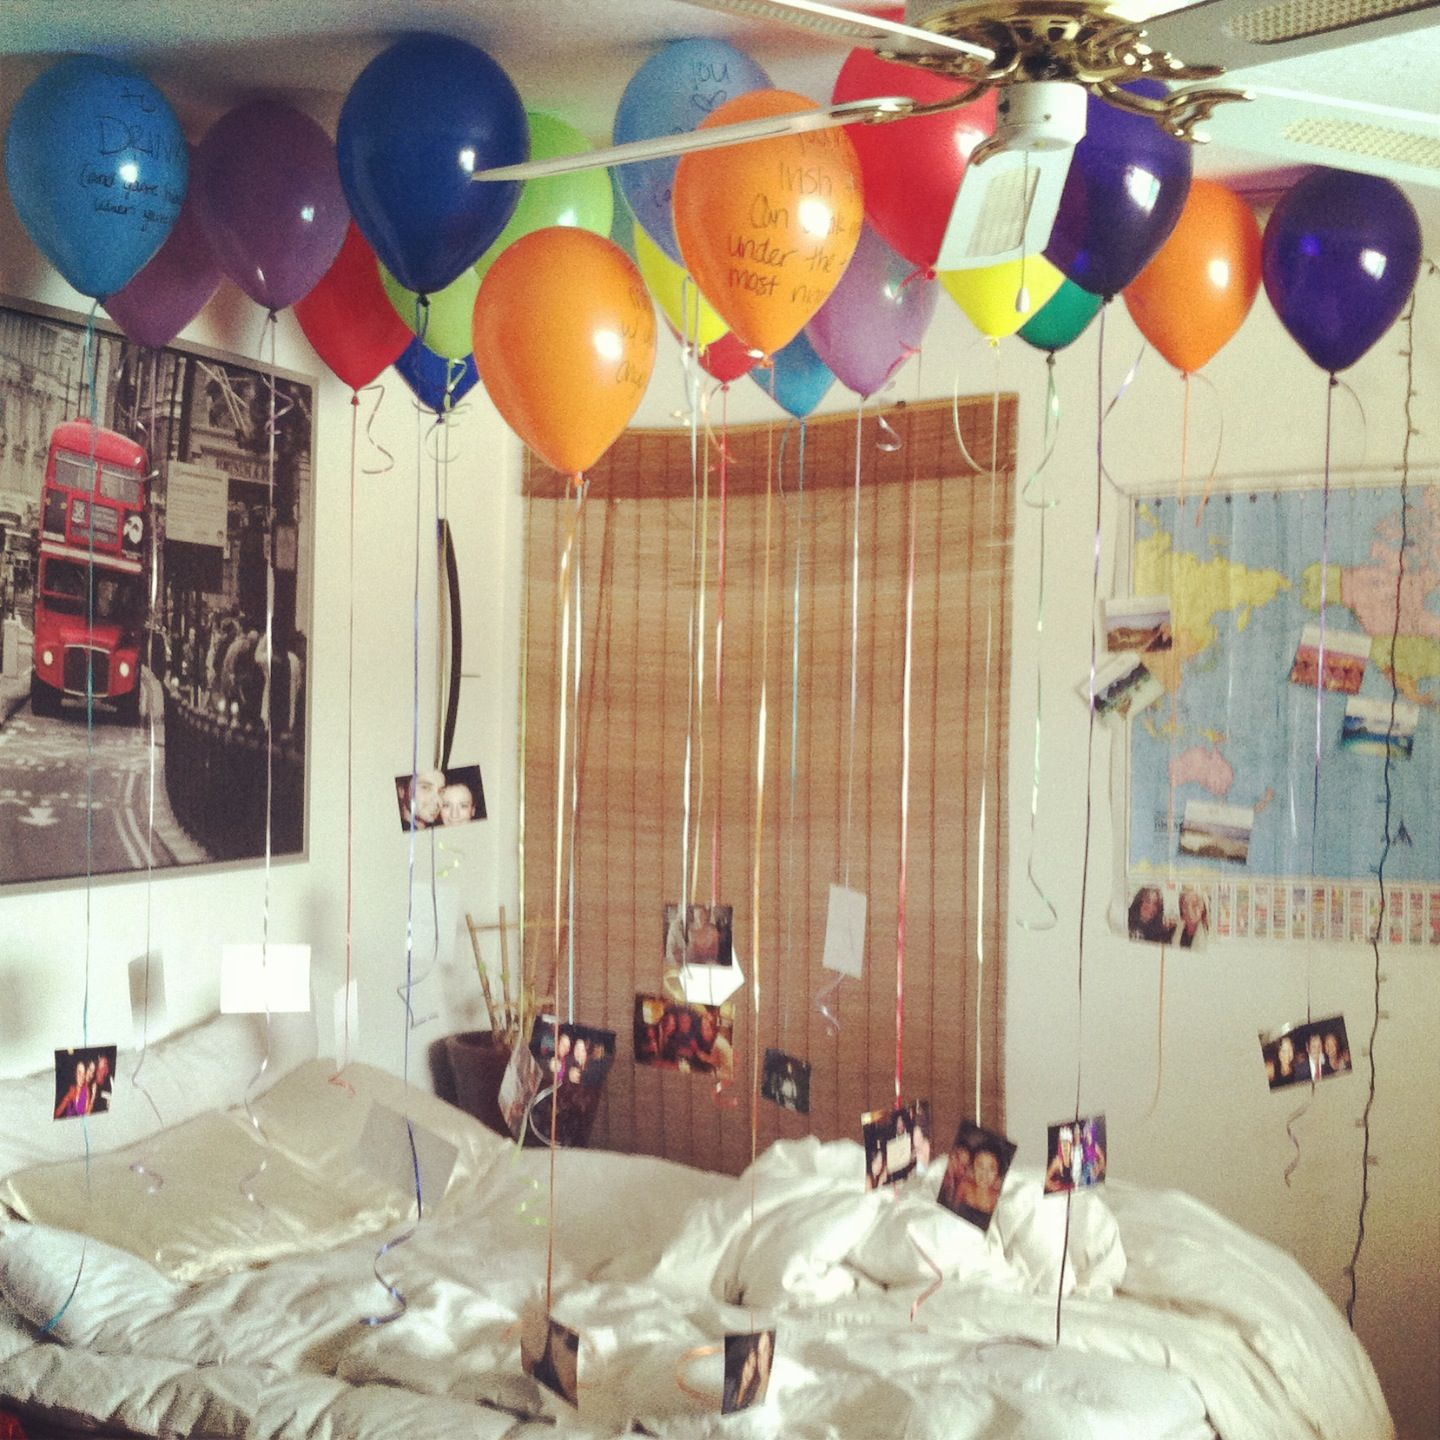 Did this for my roommates 22nd birthday 22 balloons with pictures hanging from the strings and - Bedroom decorating with balloons ...